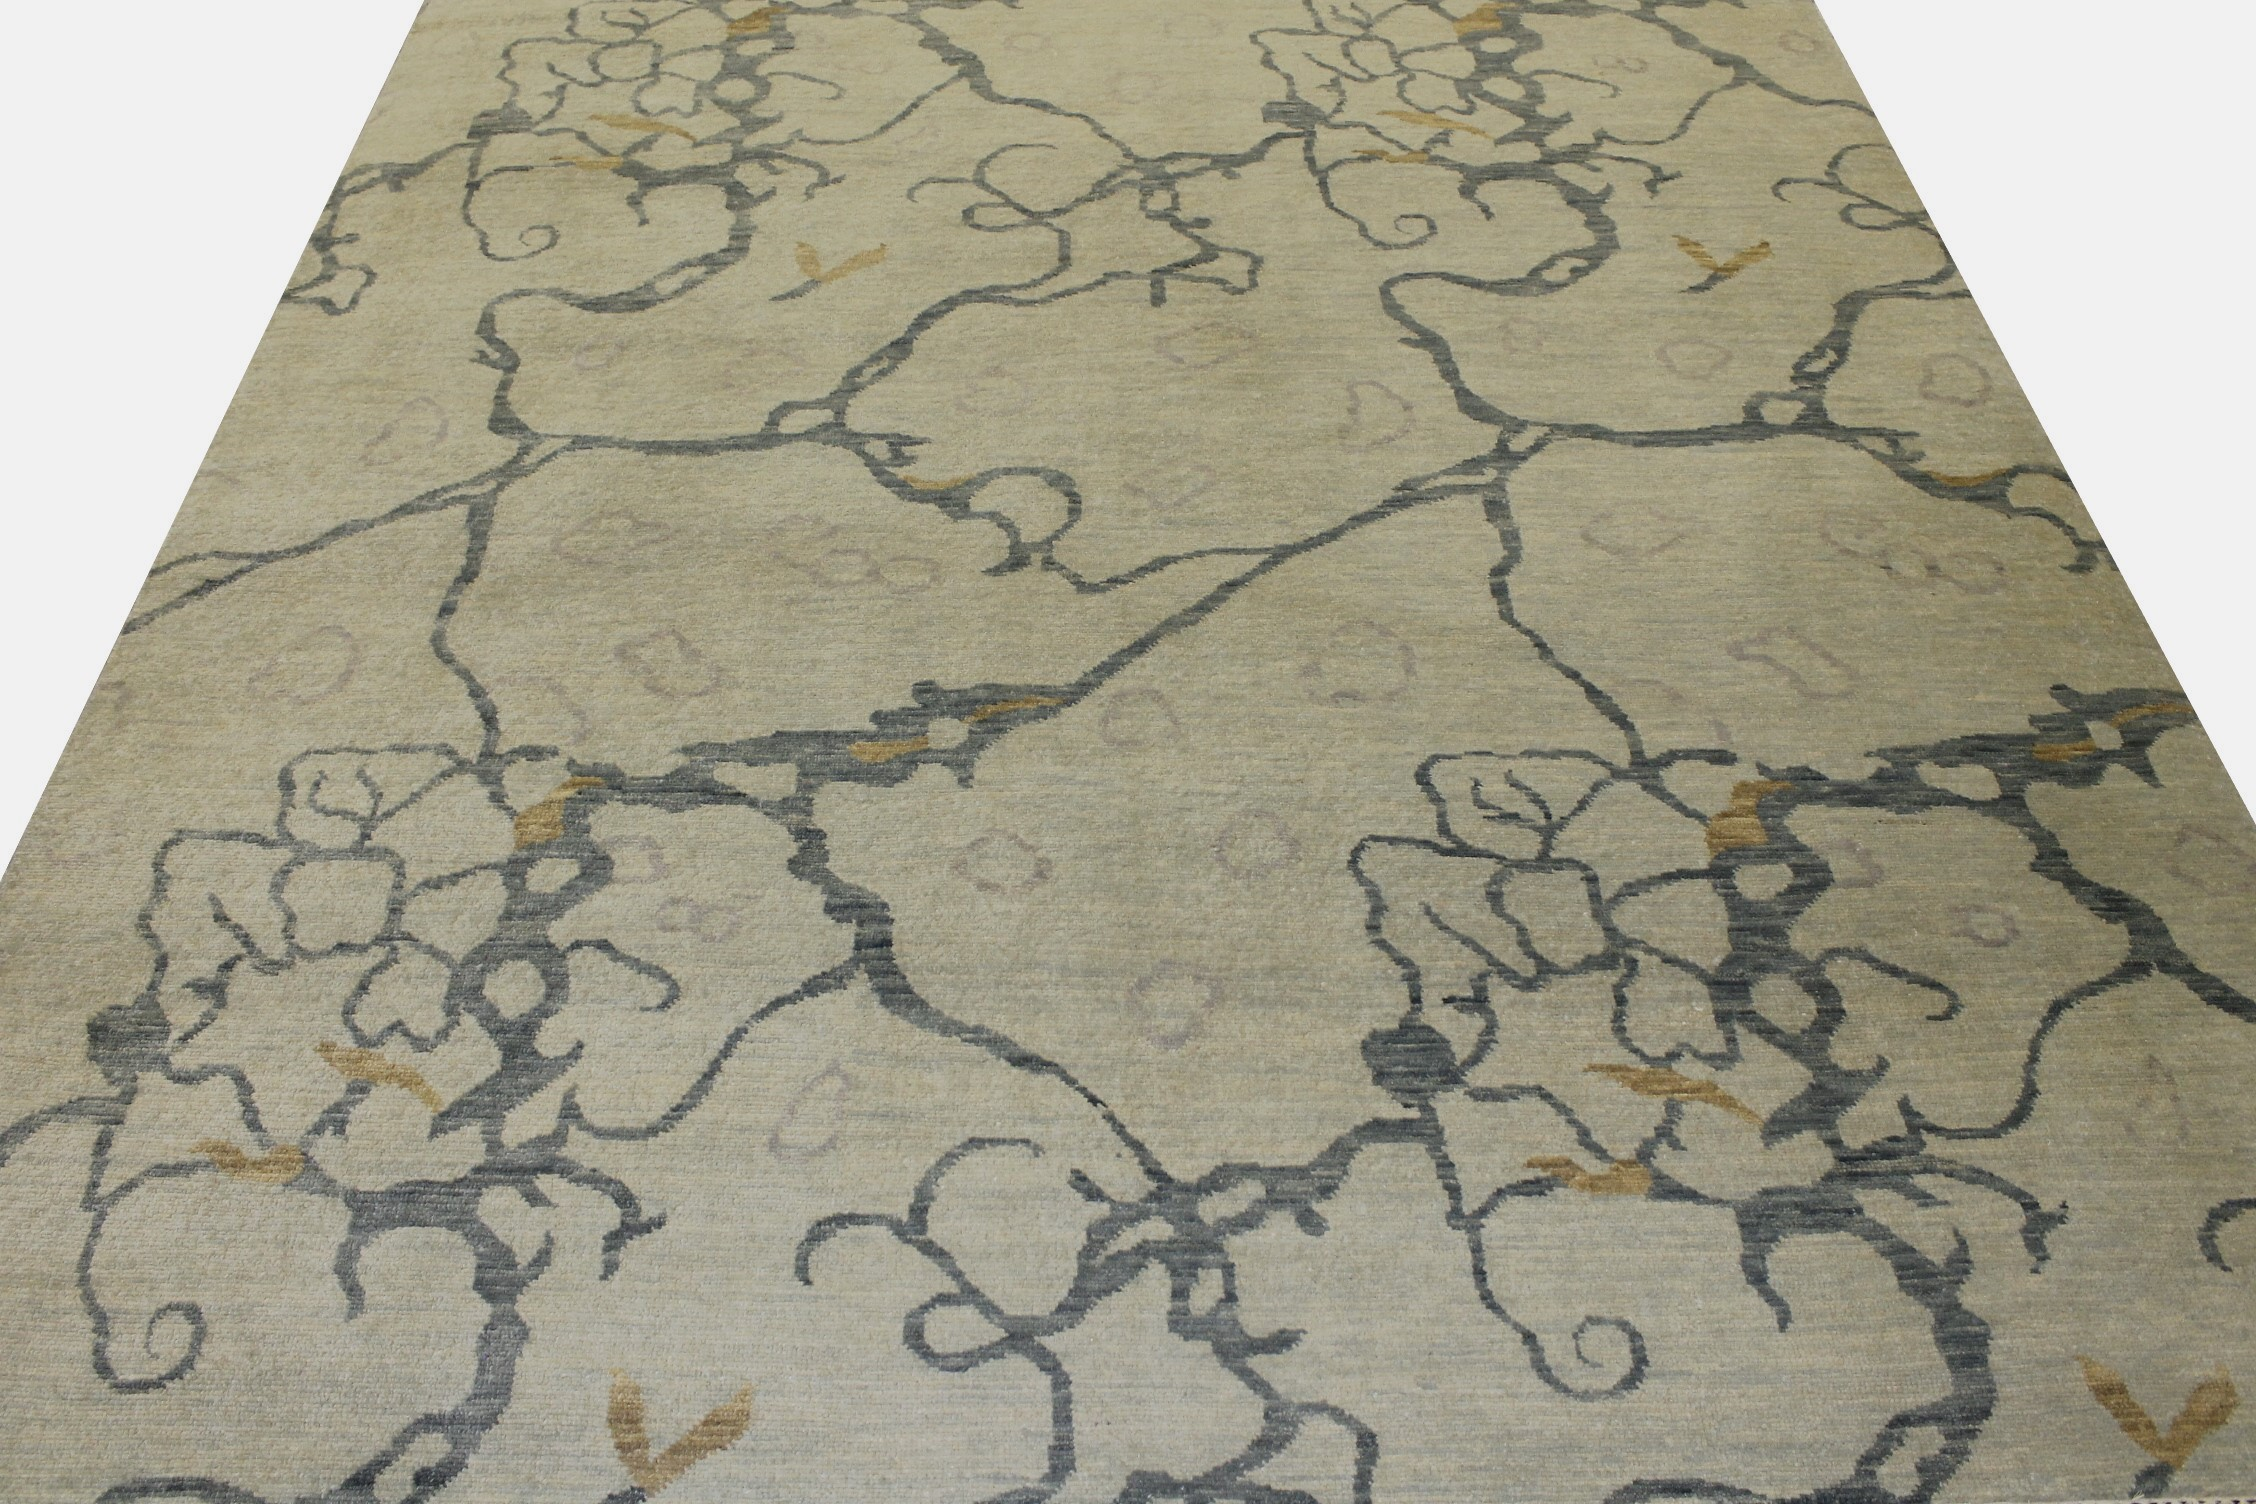 10x14 Contemporary Hand Knotted Wool Area Rug - MR17907